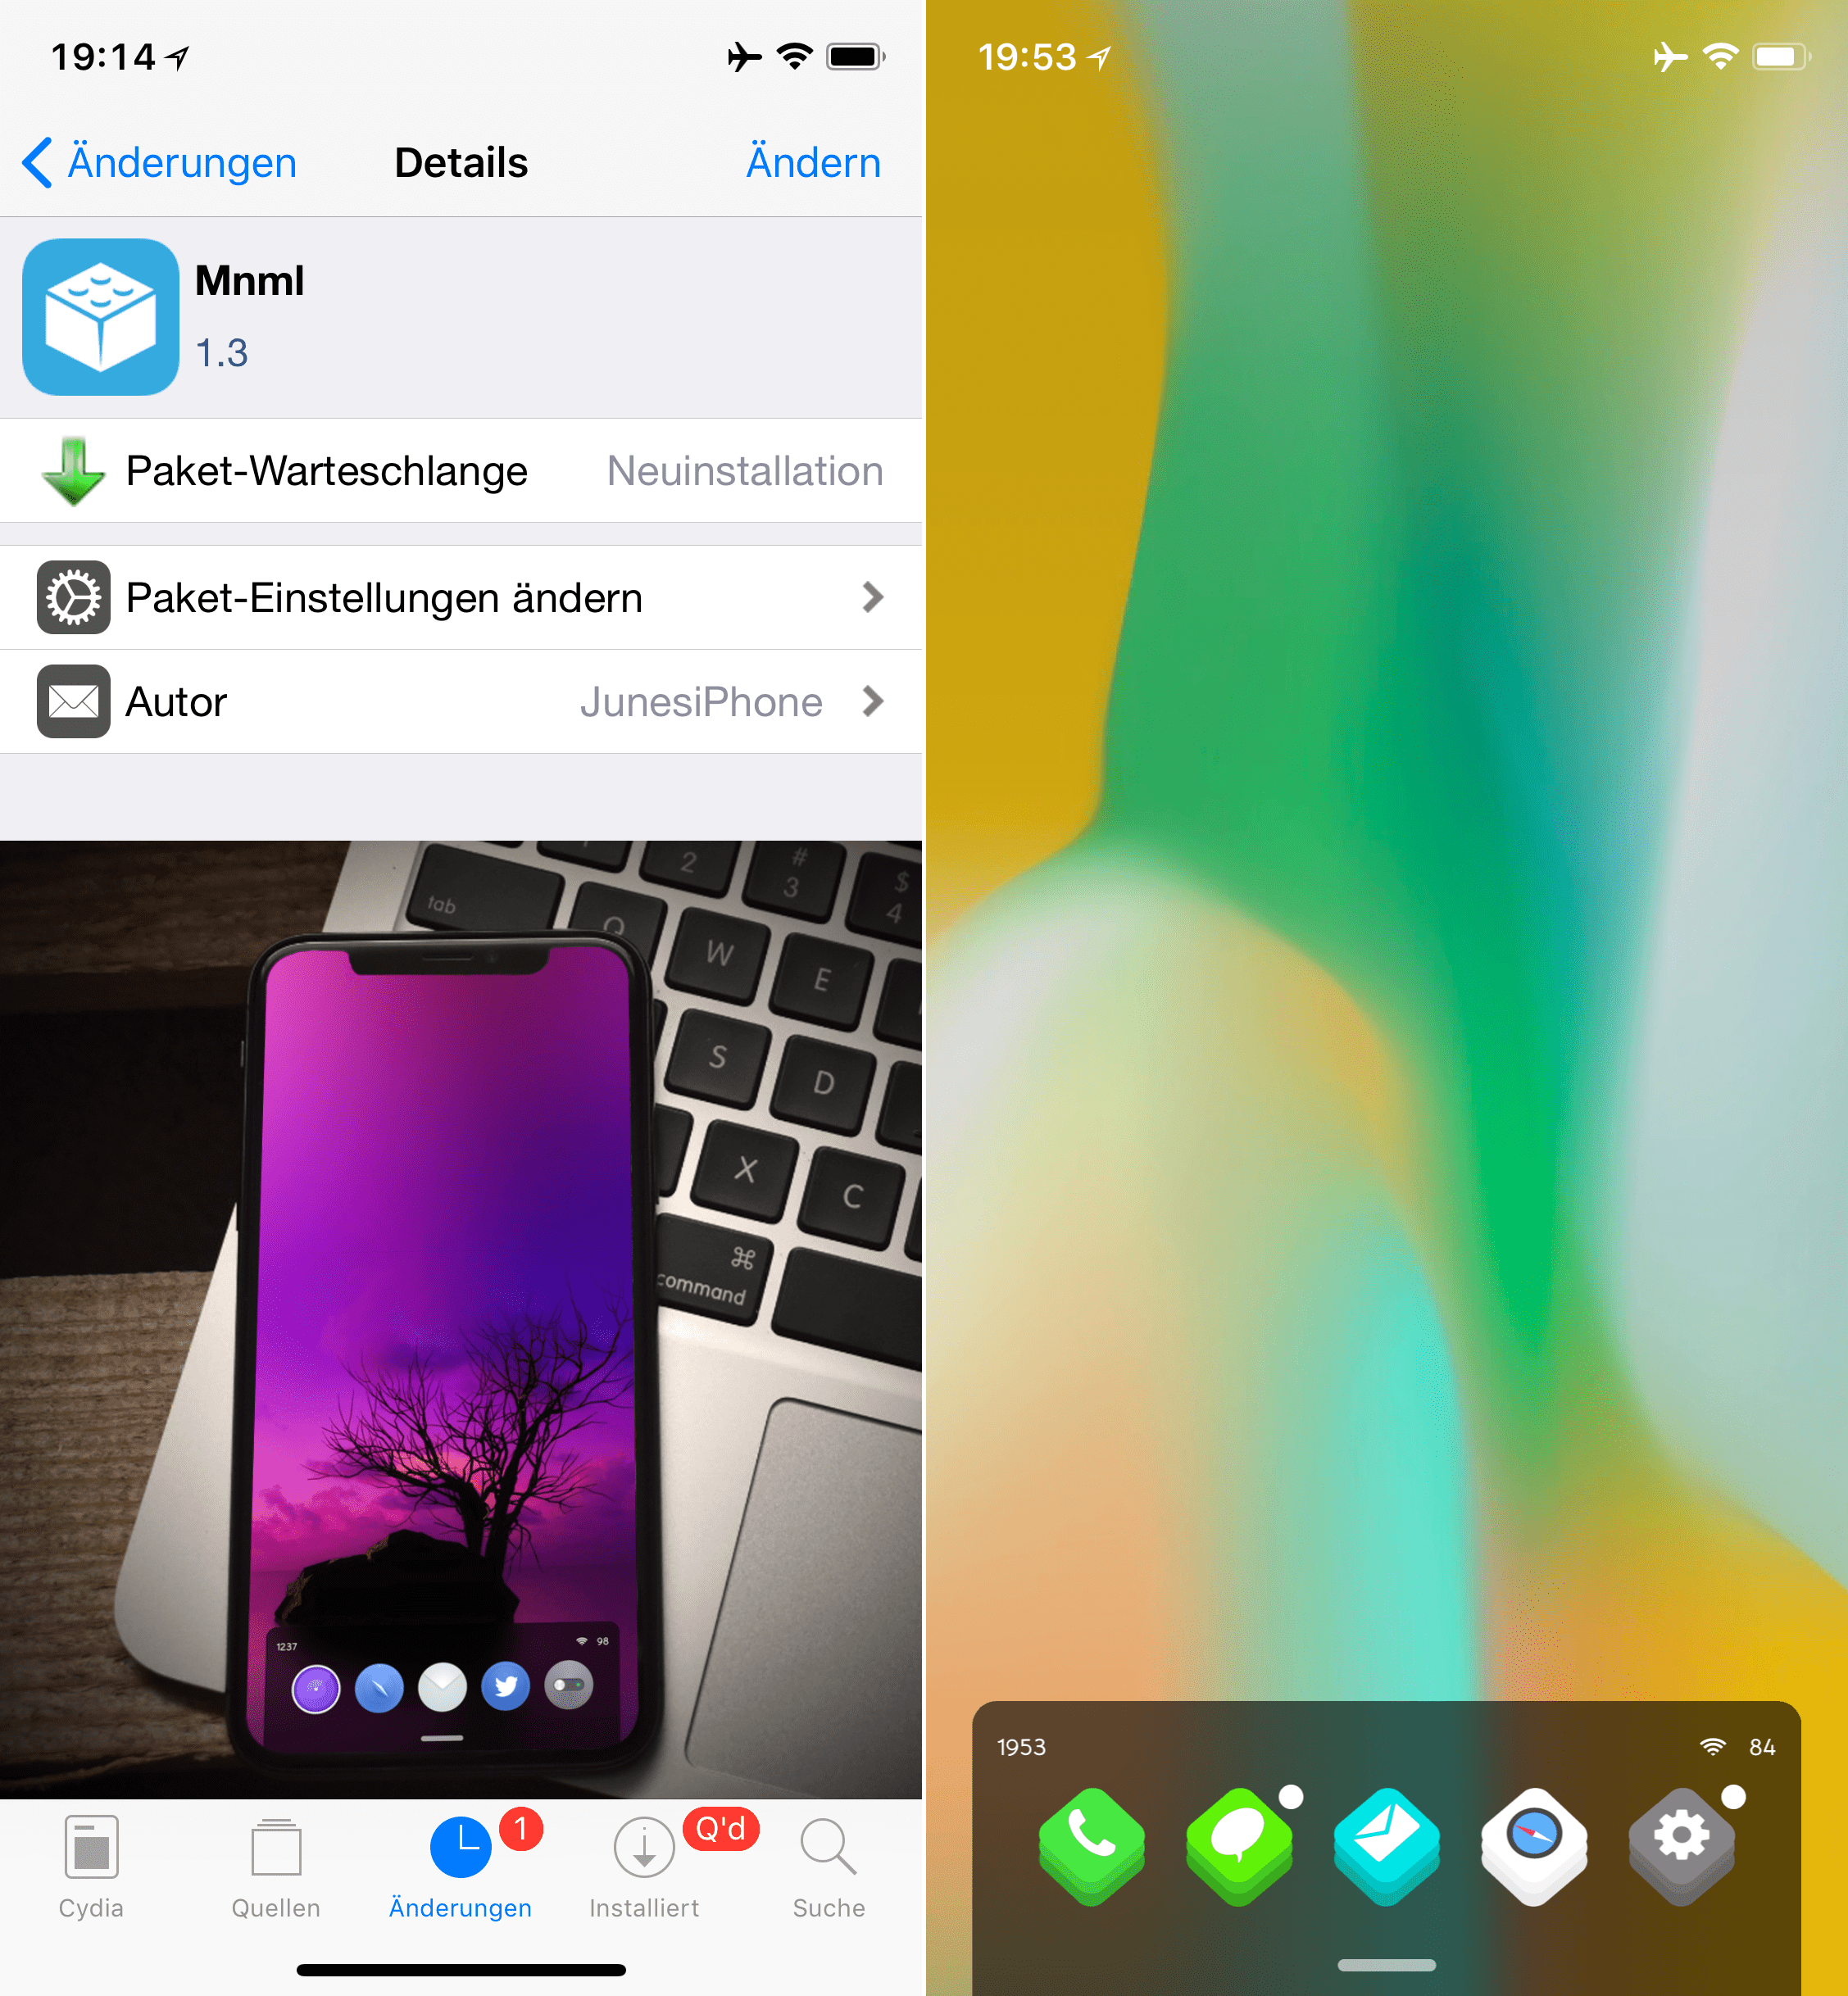 FrontPage Theme, mnml, Top, Cydia, Tweaks, Sileo, Theme, FrontPage, Download, .deb, free, Hack4Life, Anleitung, Fabian Geissler, Junesiphone, SuperSecret Repo